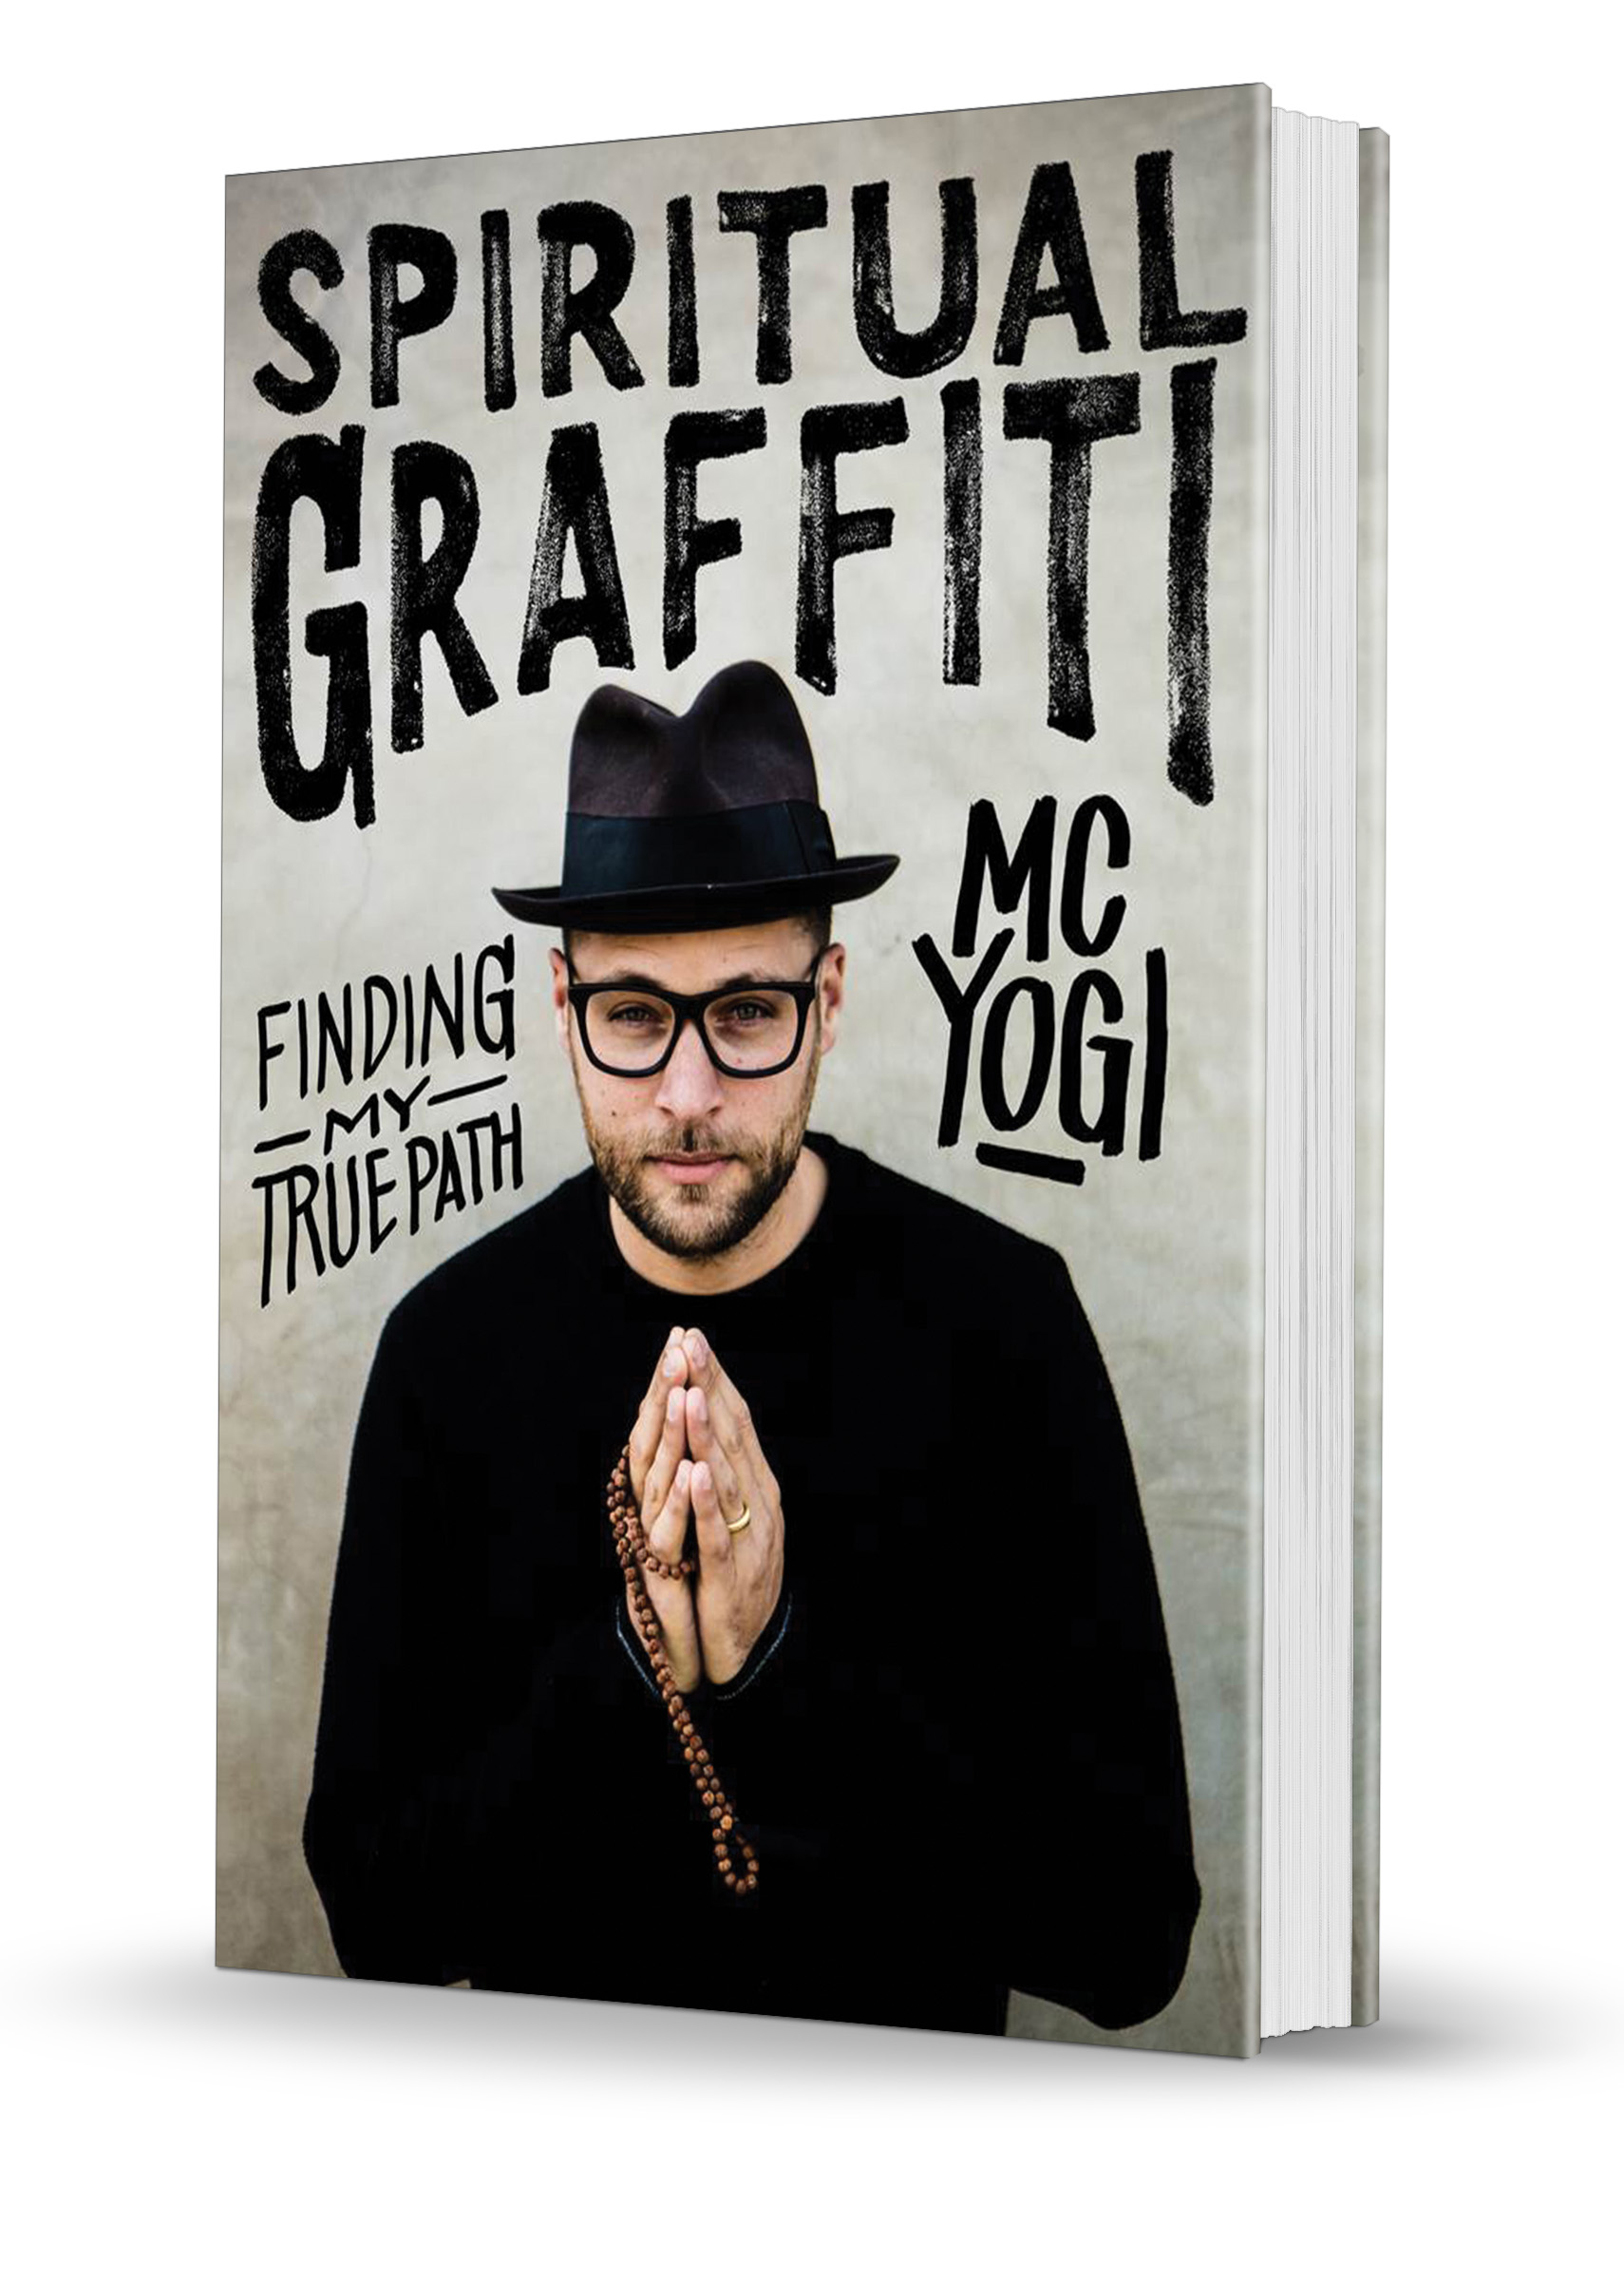 Hip-hop artist and famed yoga teacher MC Yogi offers his wisdom and inspiration for spiritual seekers in this enlightening memoir, which recounts his journey from a troubled youth to becoming a successful musical pioneer and one of the most beloved yoga teachers in North America.   Now available everywhere books are sold.